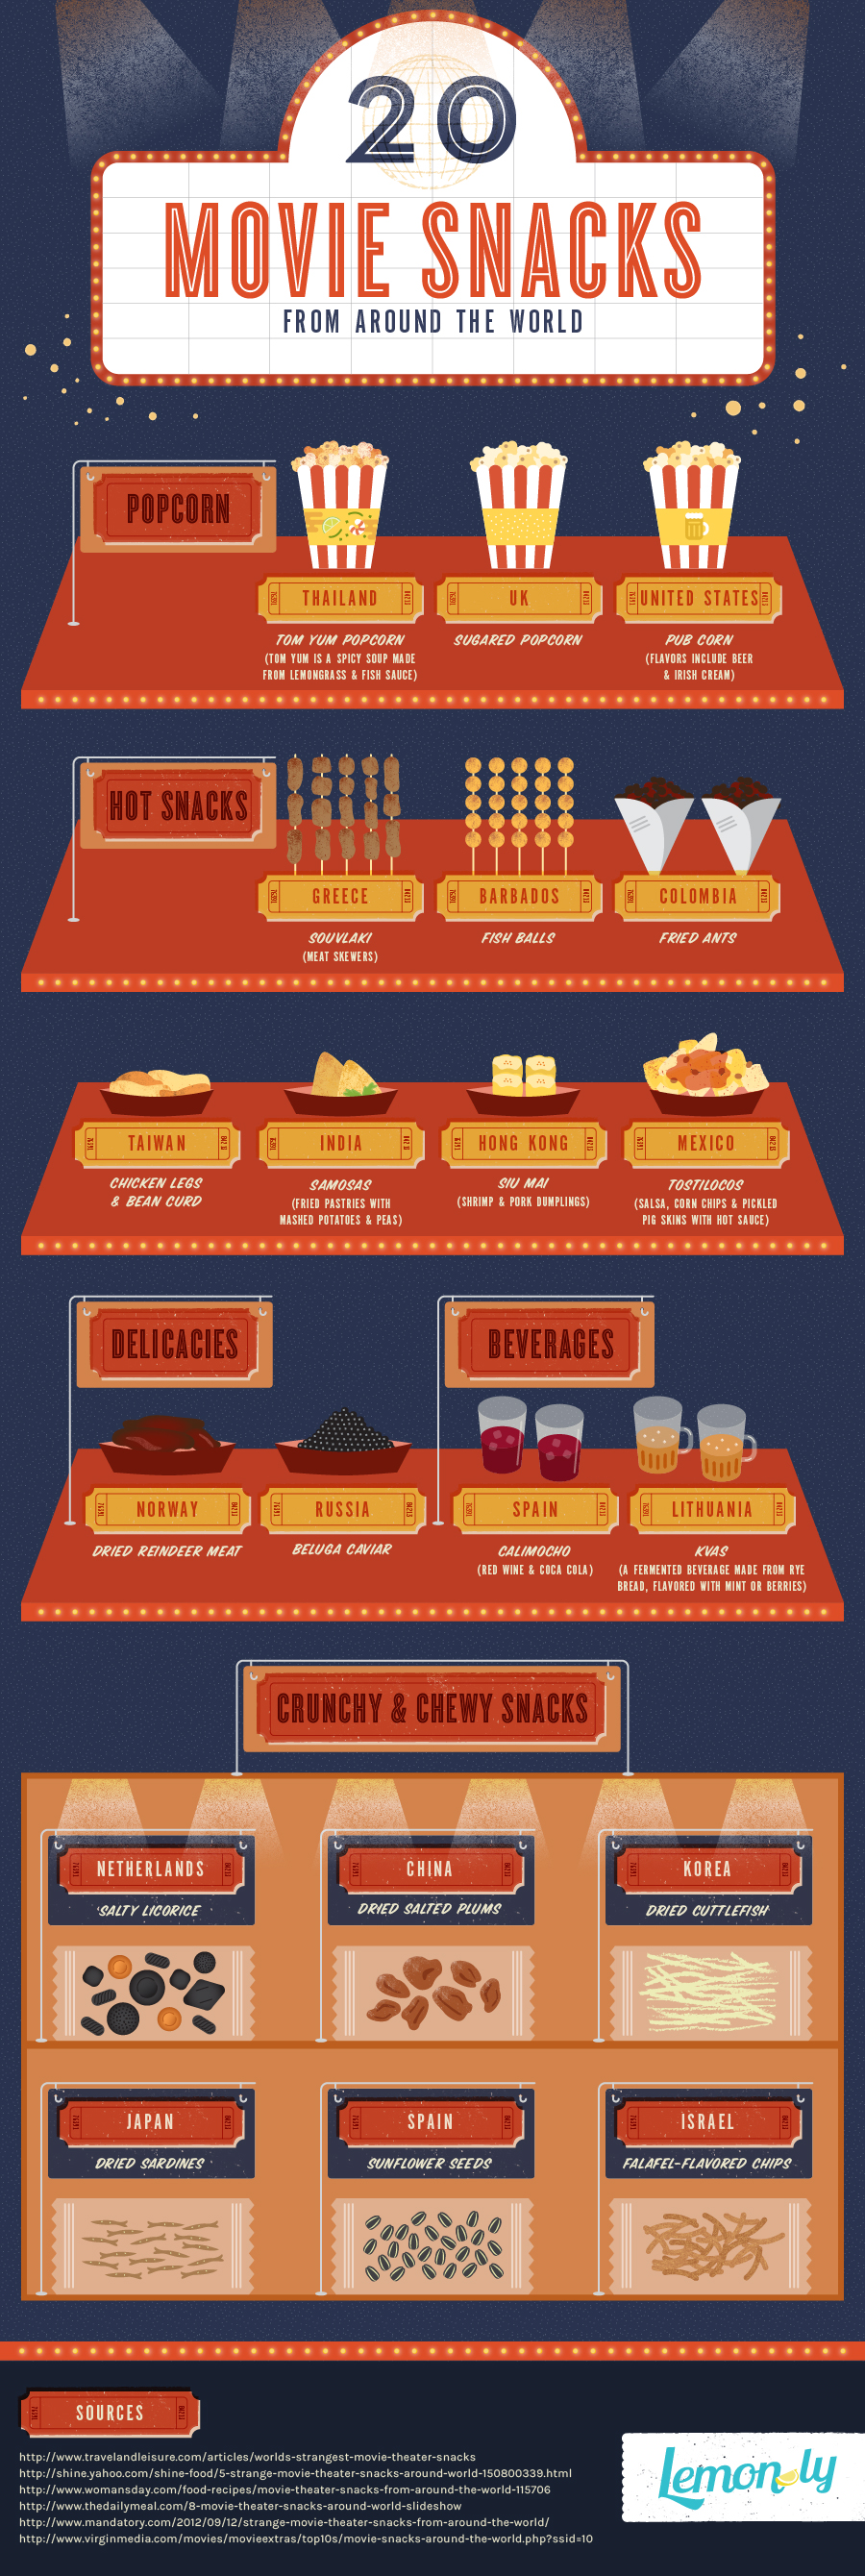 infographic bioscoop snacks